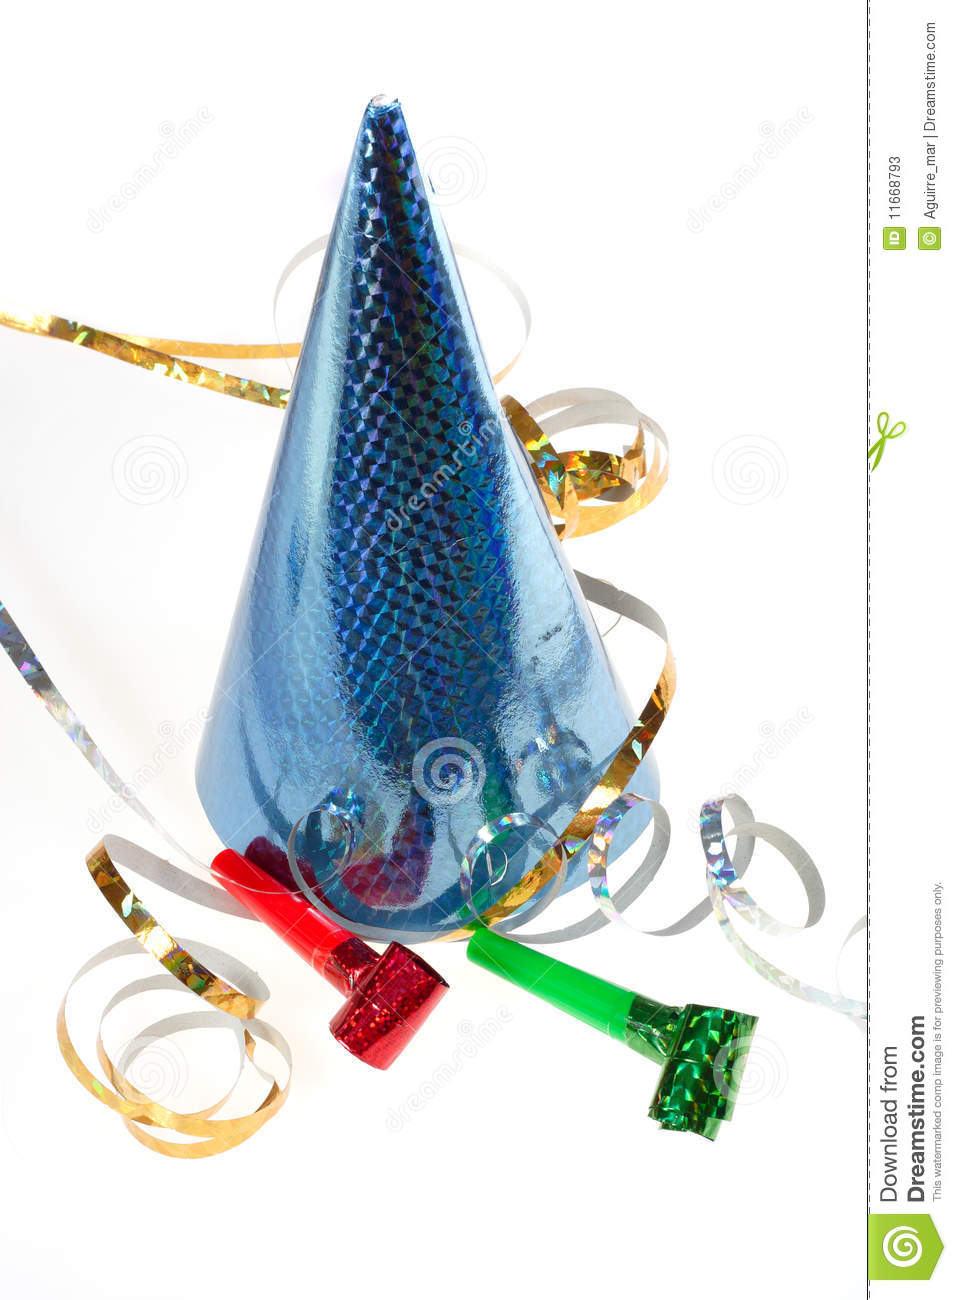 Party Items Stock Photos - Image: 11668793